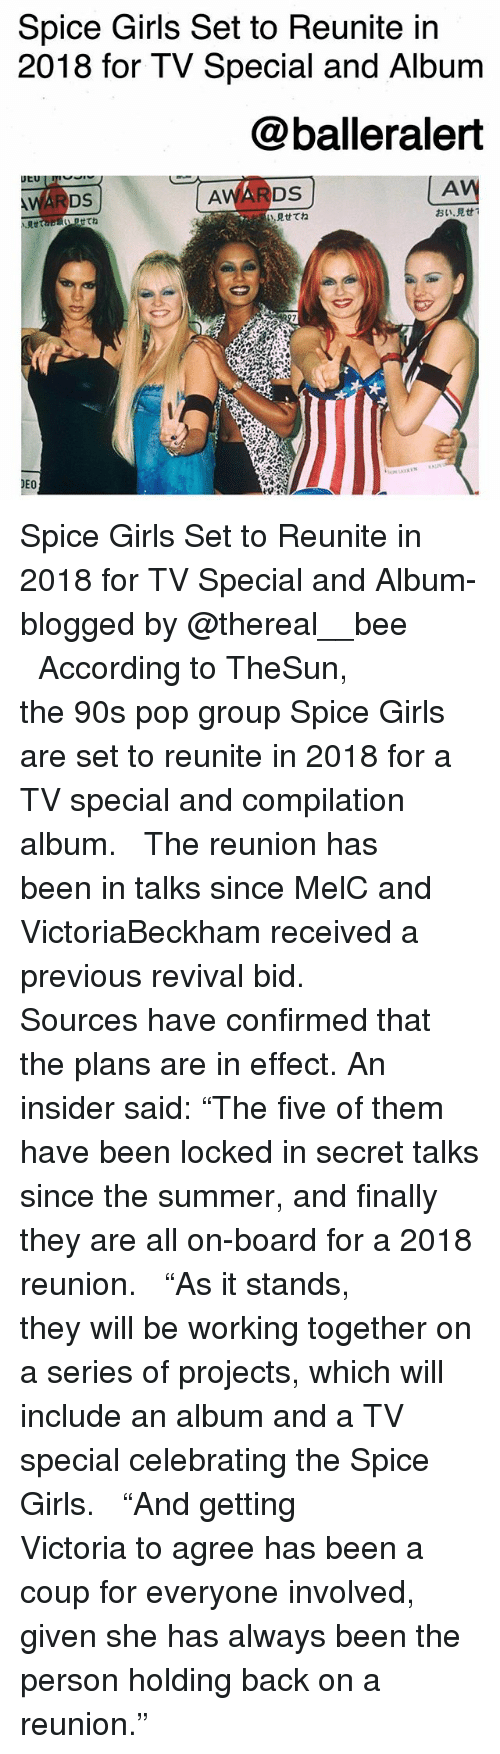 """Girls, Memes, and Pop: Spice Girls Set to Reunite in  2018 for TV Special and Album  @balleralert  AV  見せてね  おい·見せ!  Rtta  せてね  DEO Spice Girls Set to Reunite in 2018 for TV Special and Album-blogged by @thereal__bee ⠀⠀⠀⠀⠀⠀⠀⠀⠀ ⠀⠀ According to TheSun, the 90s pop group Spice Girls are set to reunite in 2018 for a TV special and compilation album. ⠀⠀⠀⠀⠀⠀⠀⠀⠀ ⠀⠀ The reunion has been in talks since MelC and VictoriaBeckham received a previous revival bid. ⠀⠀⠀⠀⠀⠀⠀⠀⠀ ⠀⠀ Sources have confirmed that the plans are in effect. An insider said: """"The five of them have been locked in secret talks since the summer, and finally they are all on-board for a 2018 reunion. ⠀⠀⠀⠀⠀⠀⠀⠀⠀ ⠀⠀ """"As it stands, they will be working together on a series of projects, which will include an album and a TV special celebrating the Spice Girls. ⠀⠀⠀⠀⠀⠀⠀⠀⠀ ⠀⠀ """"And getting Victoria to agree has been a coup for everyone involved, given she has always been the person holding back on a reunion."""""""